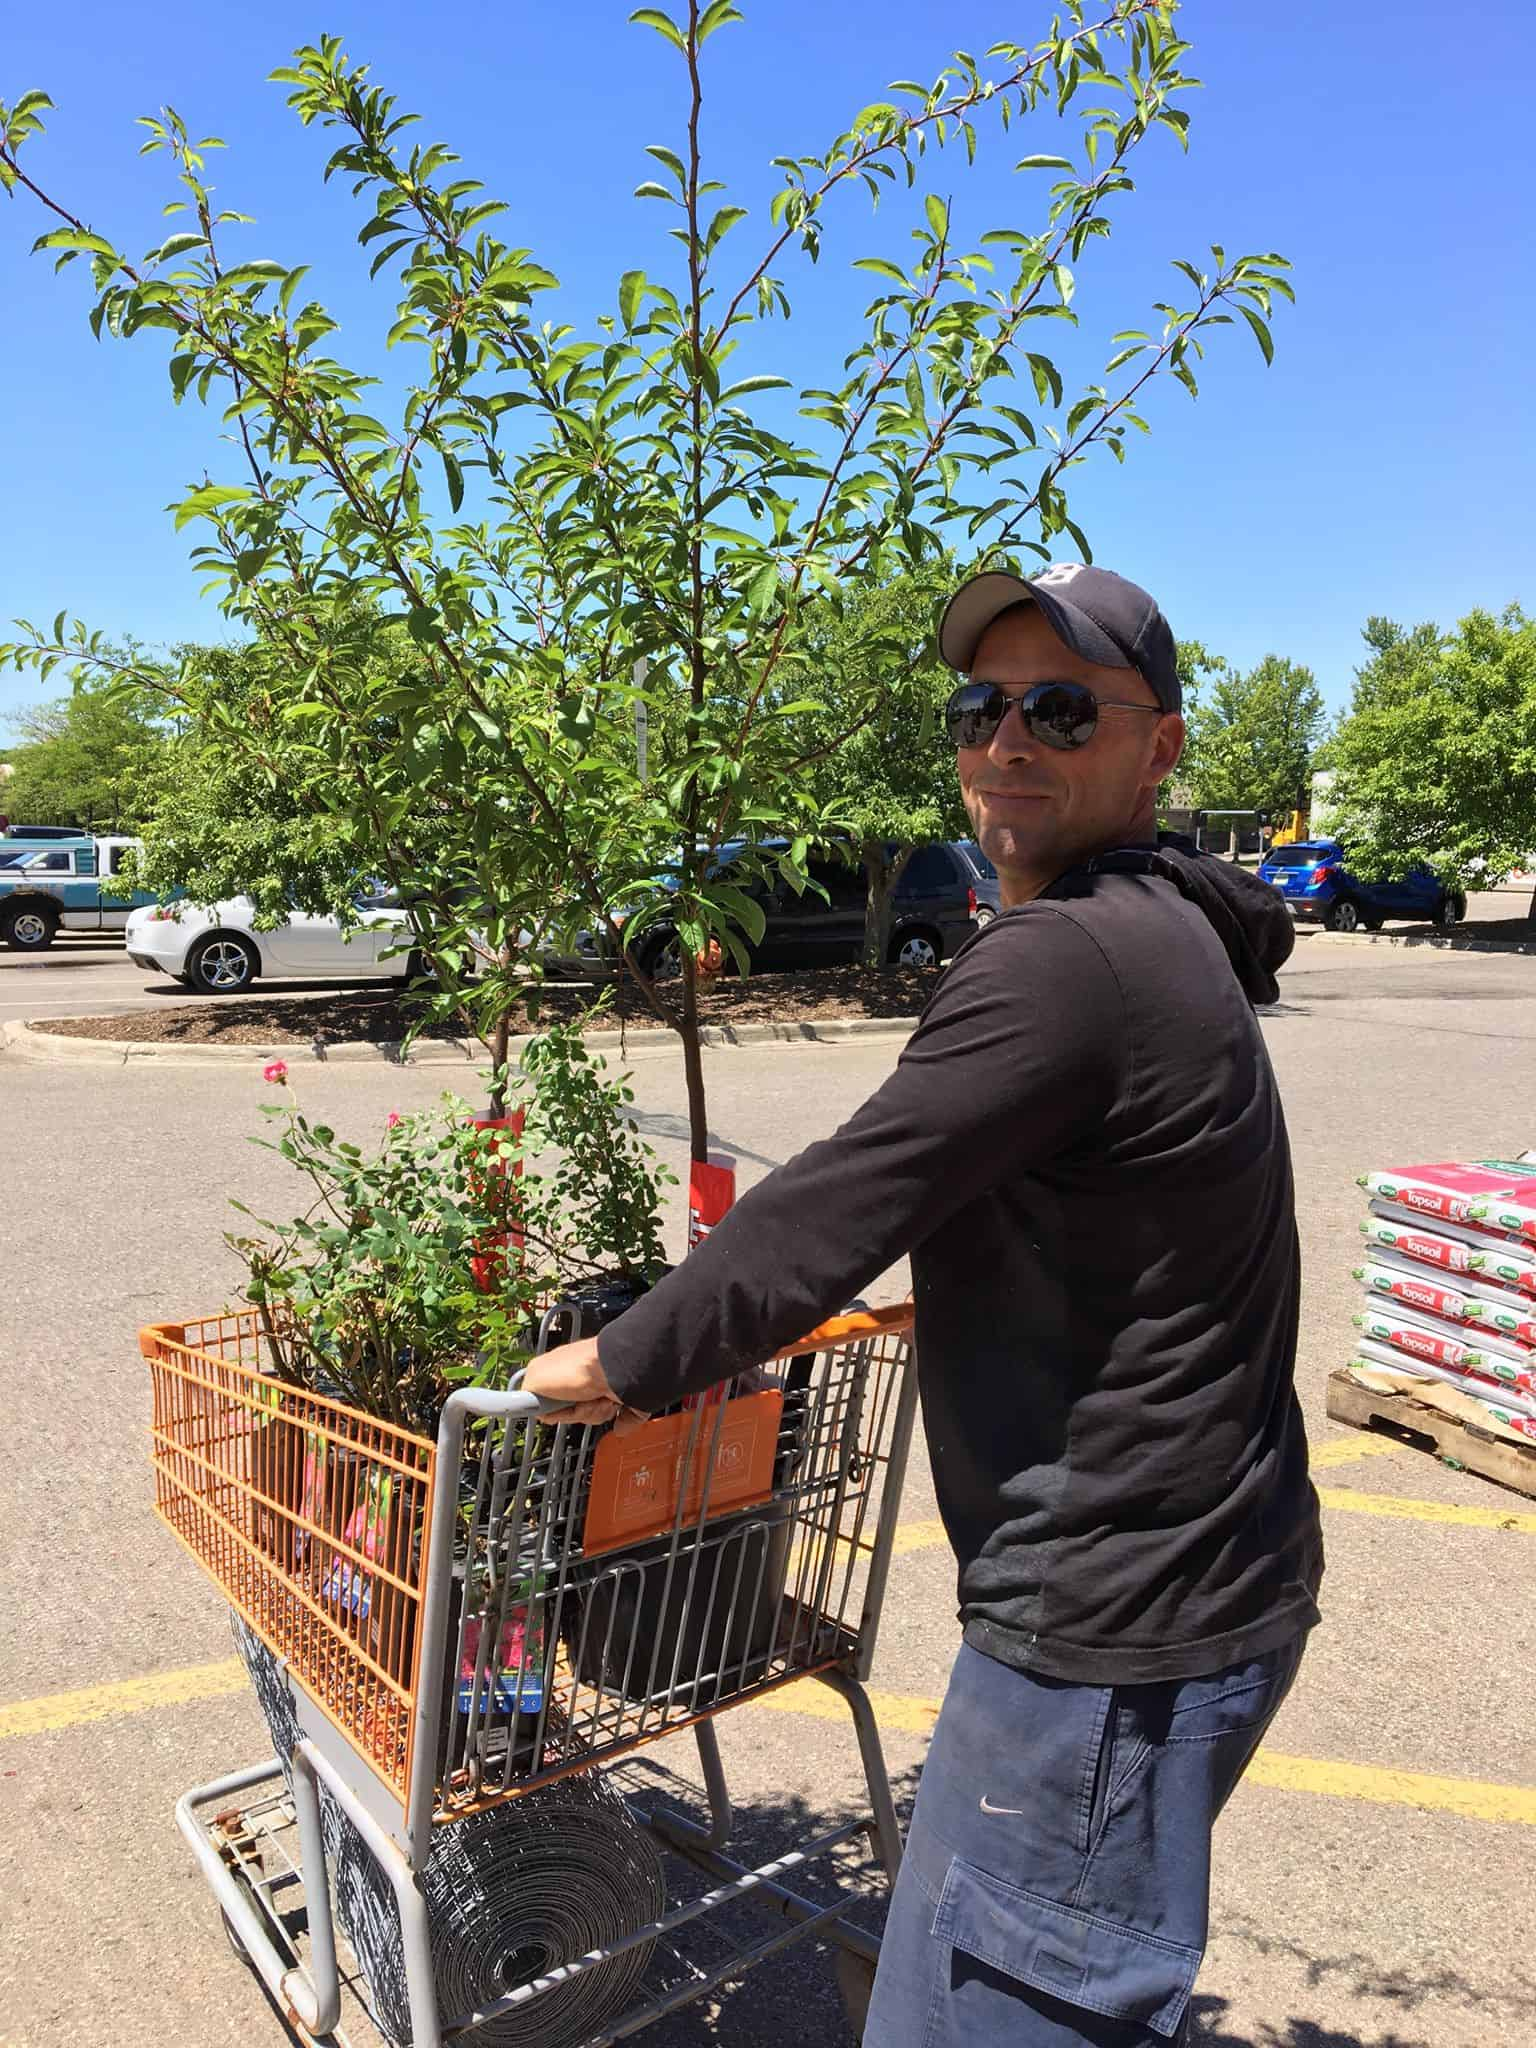 A man with a grocery cart of plants.